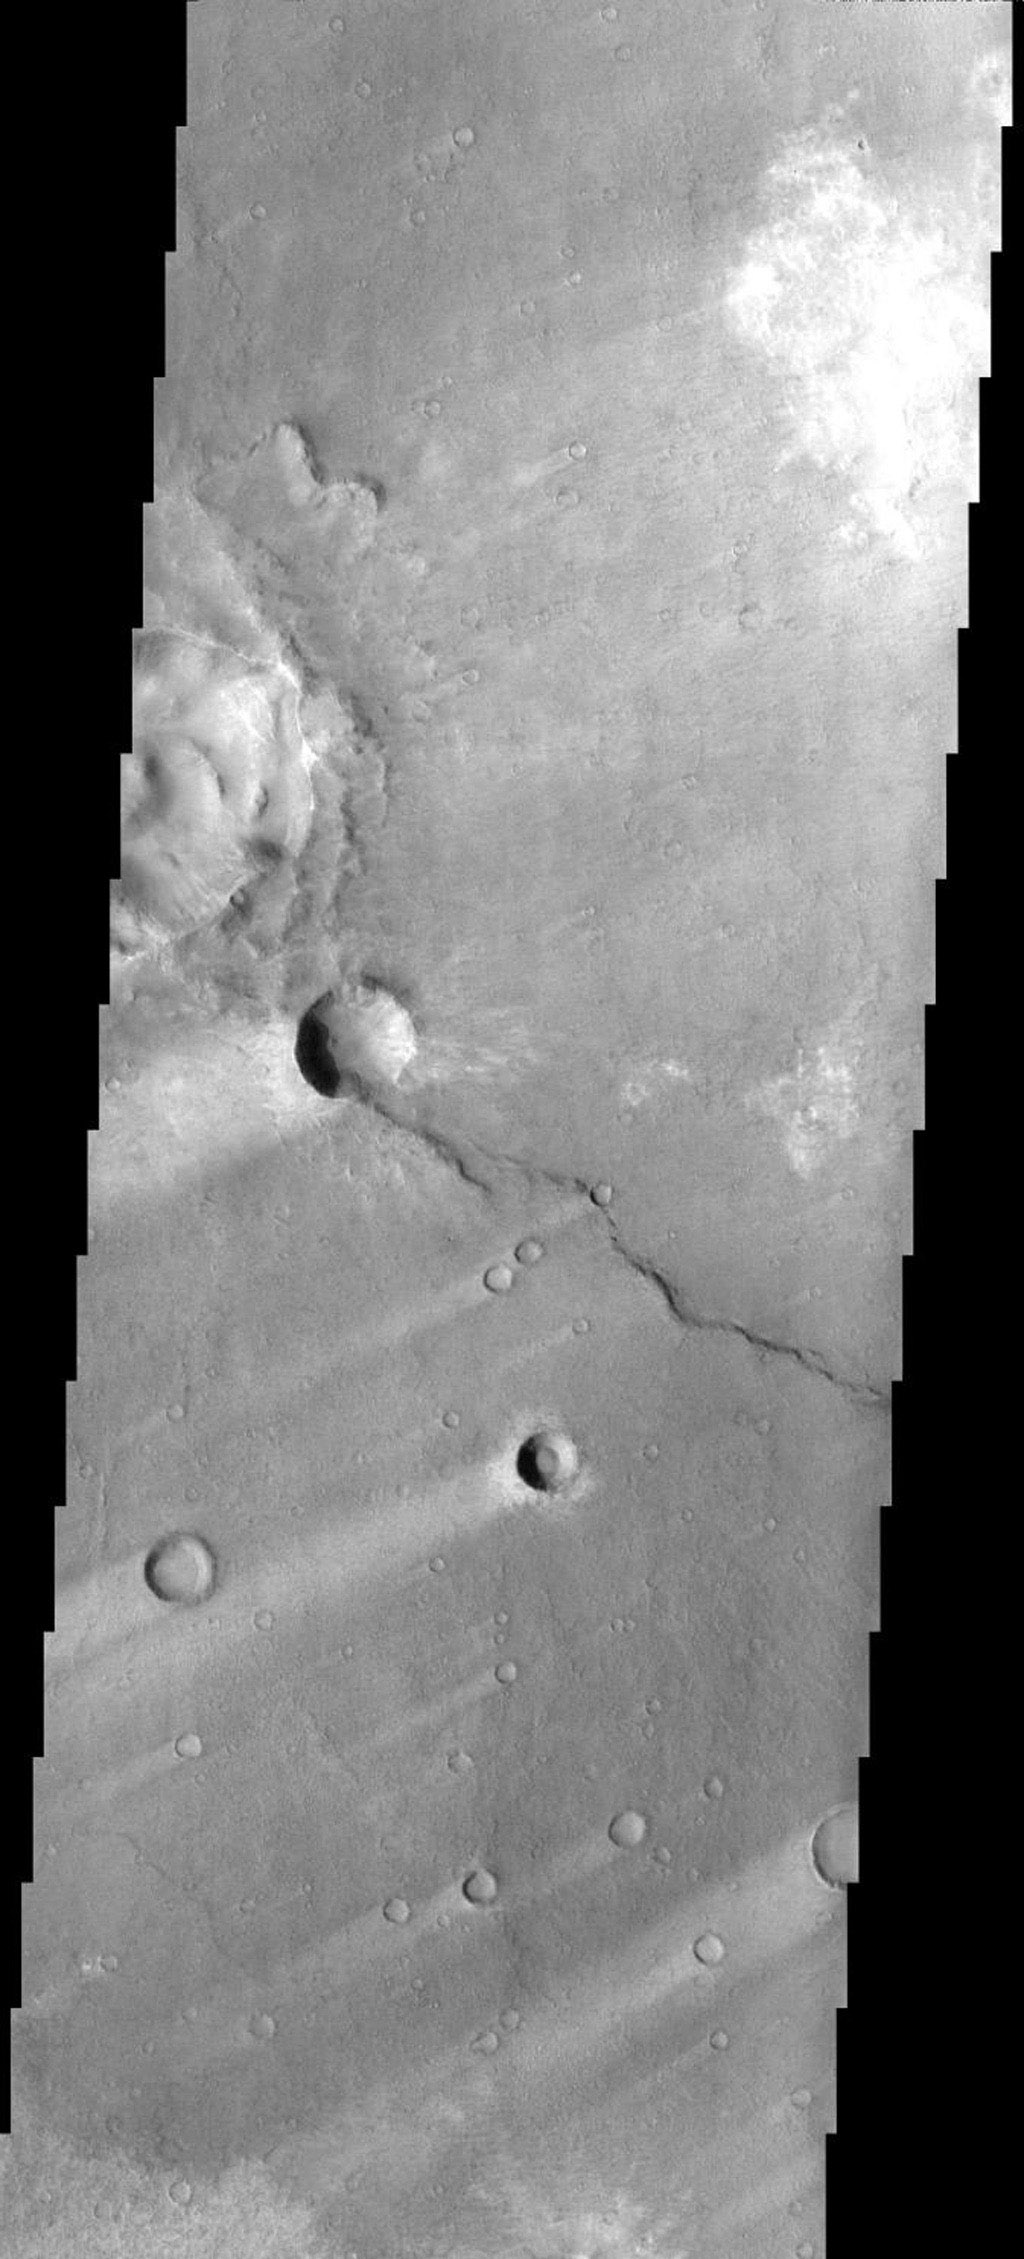 These windstreaks are located in the southern part of Syrtis major on Mars. This image was taken by NASA's 2001 Mars Odyssey.